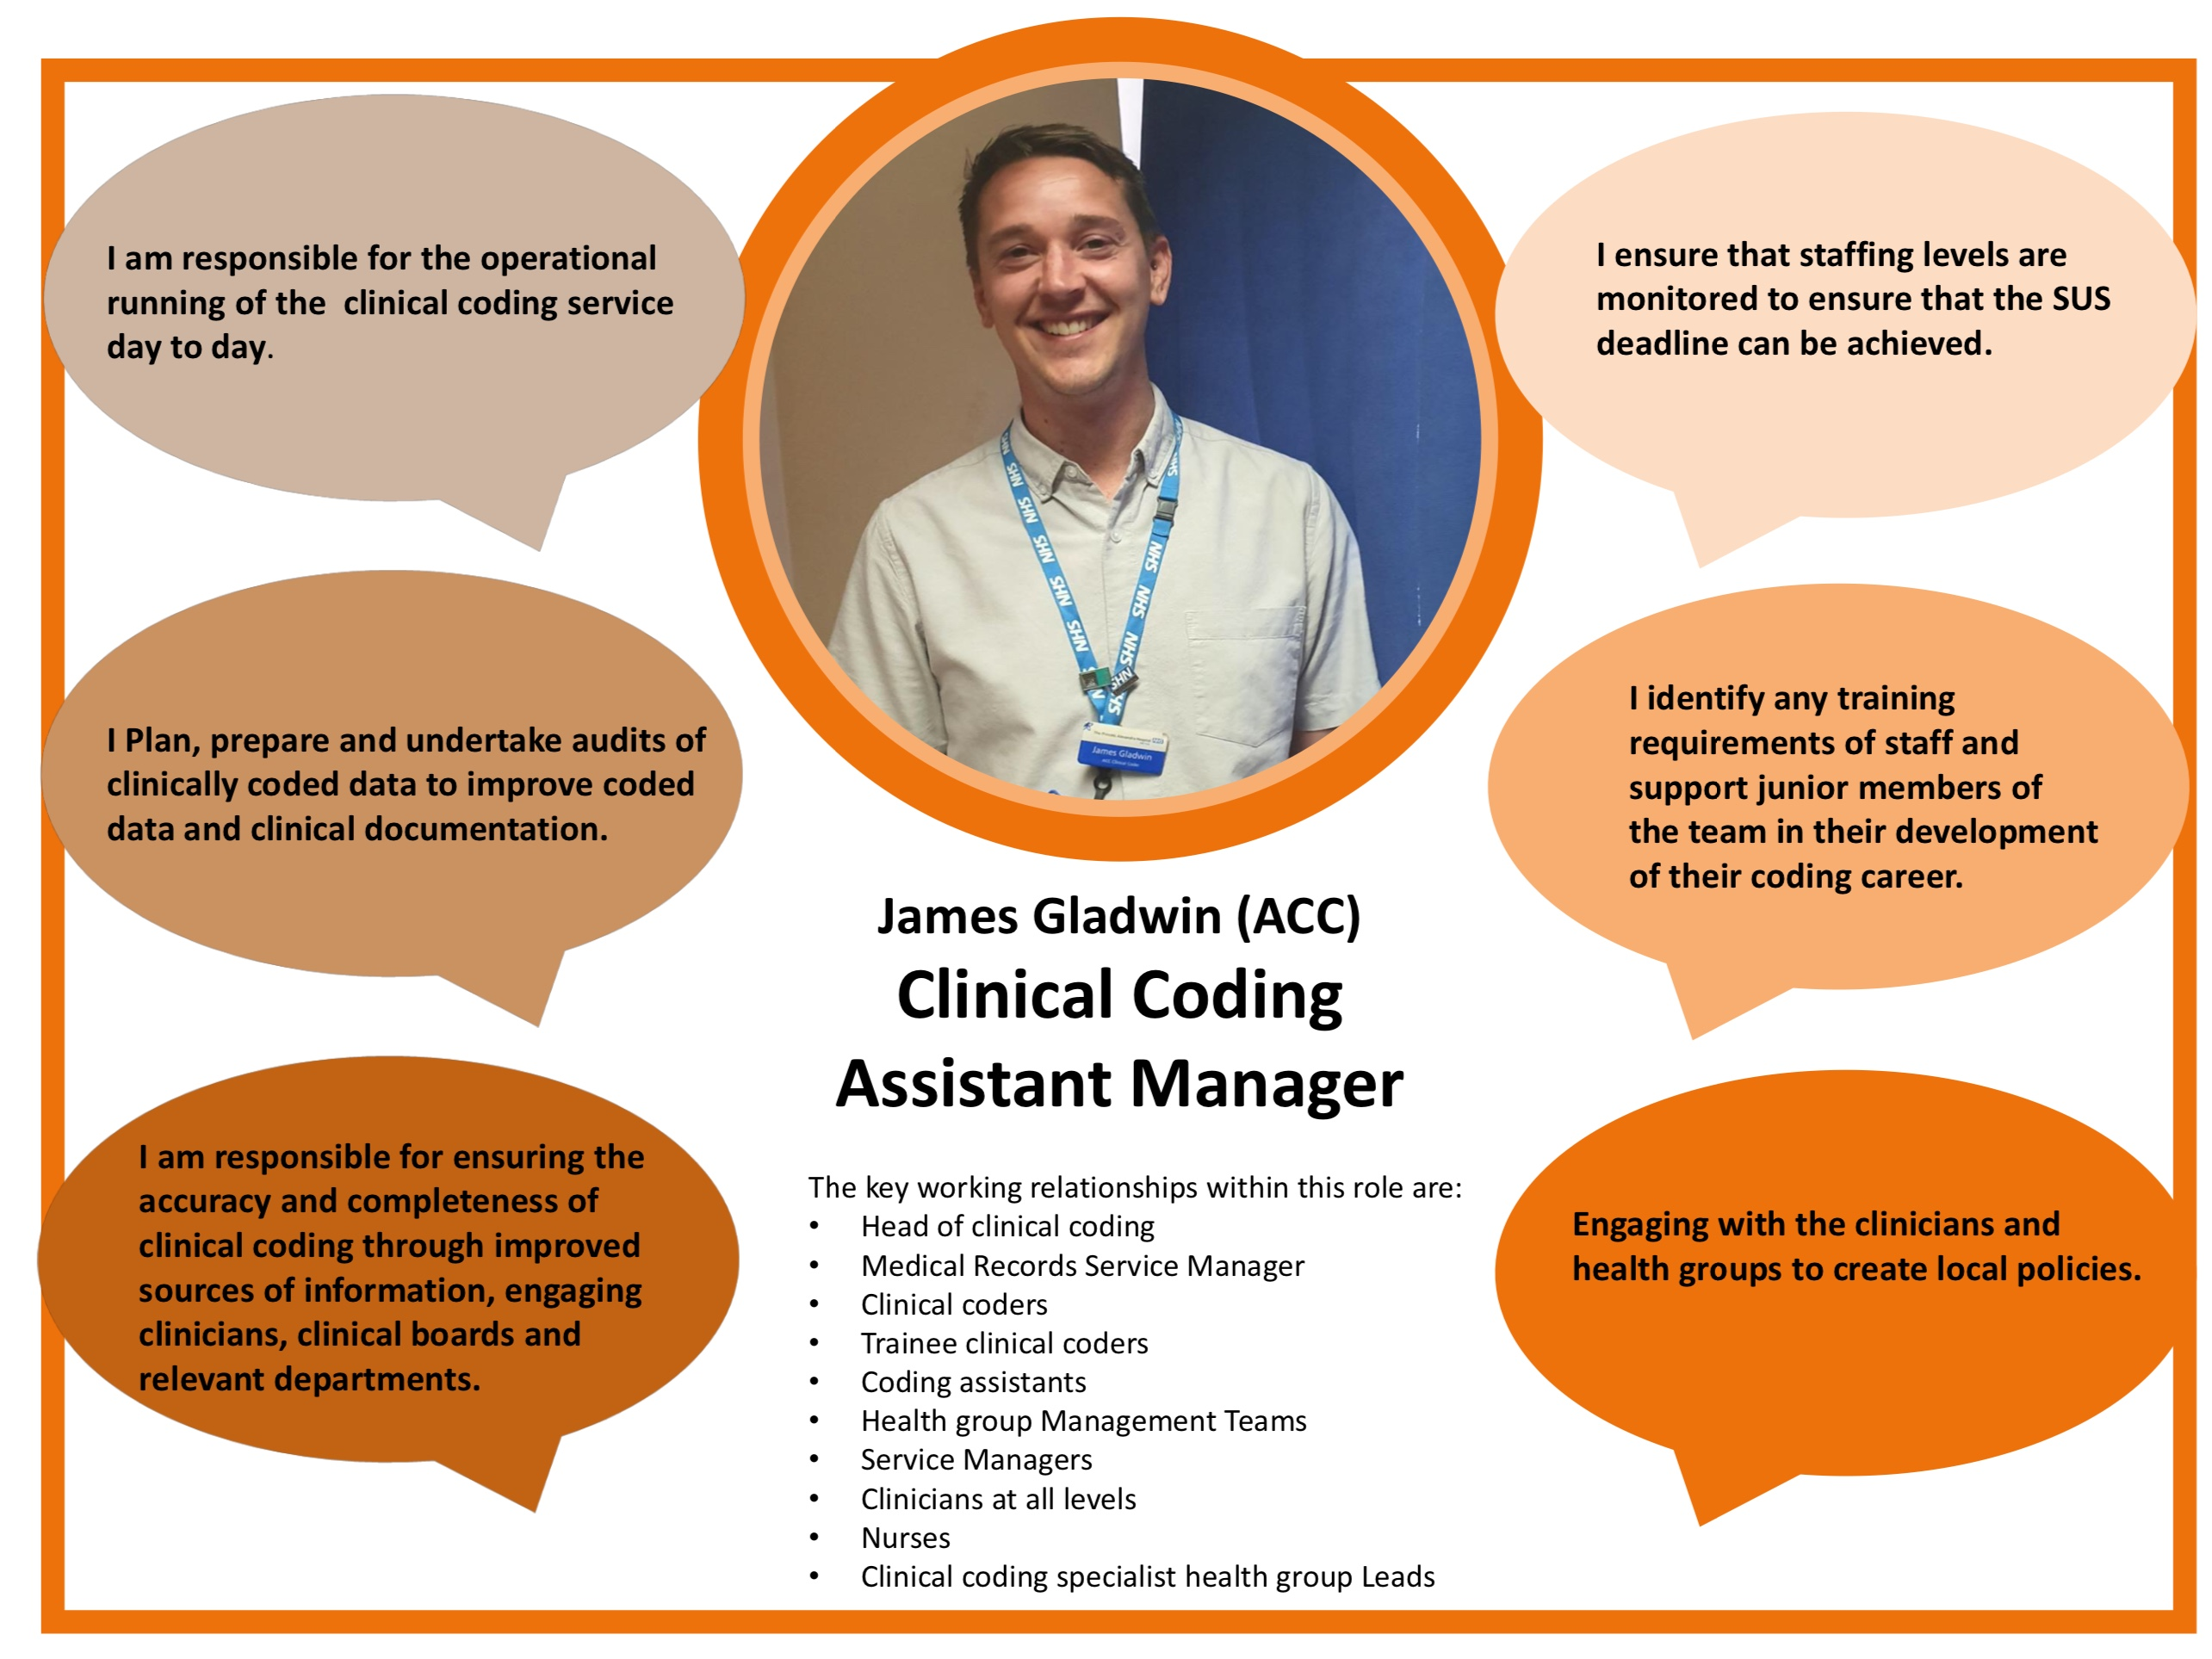 PAHT - What does a Clinical  Coding Assistant Manager Do? featured image